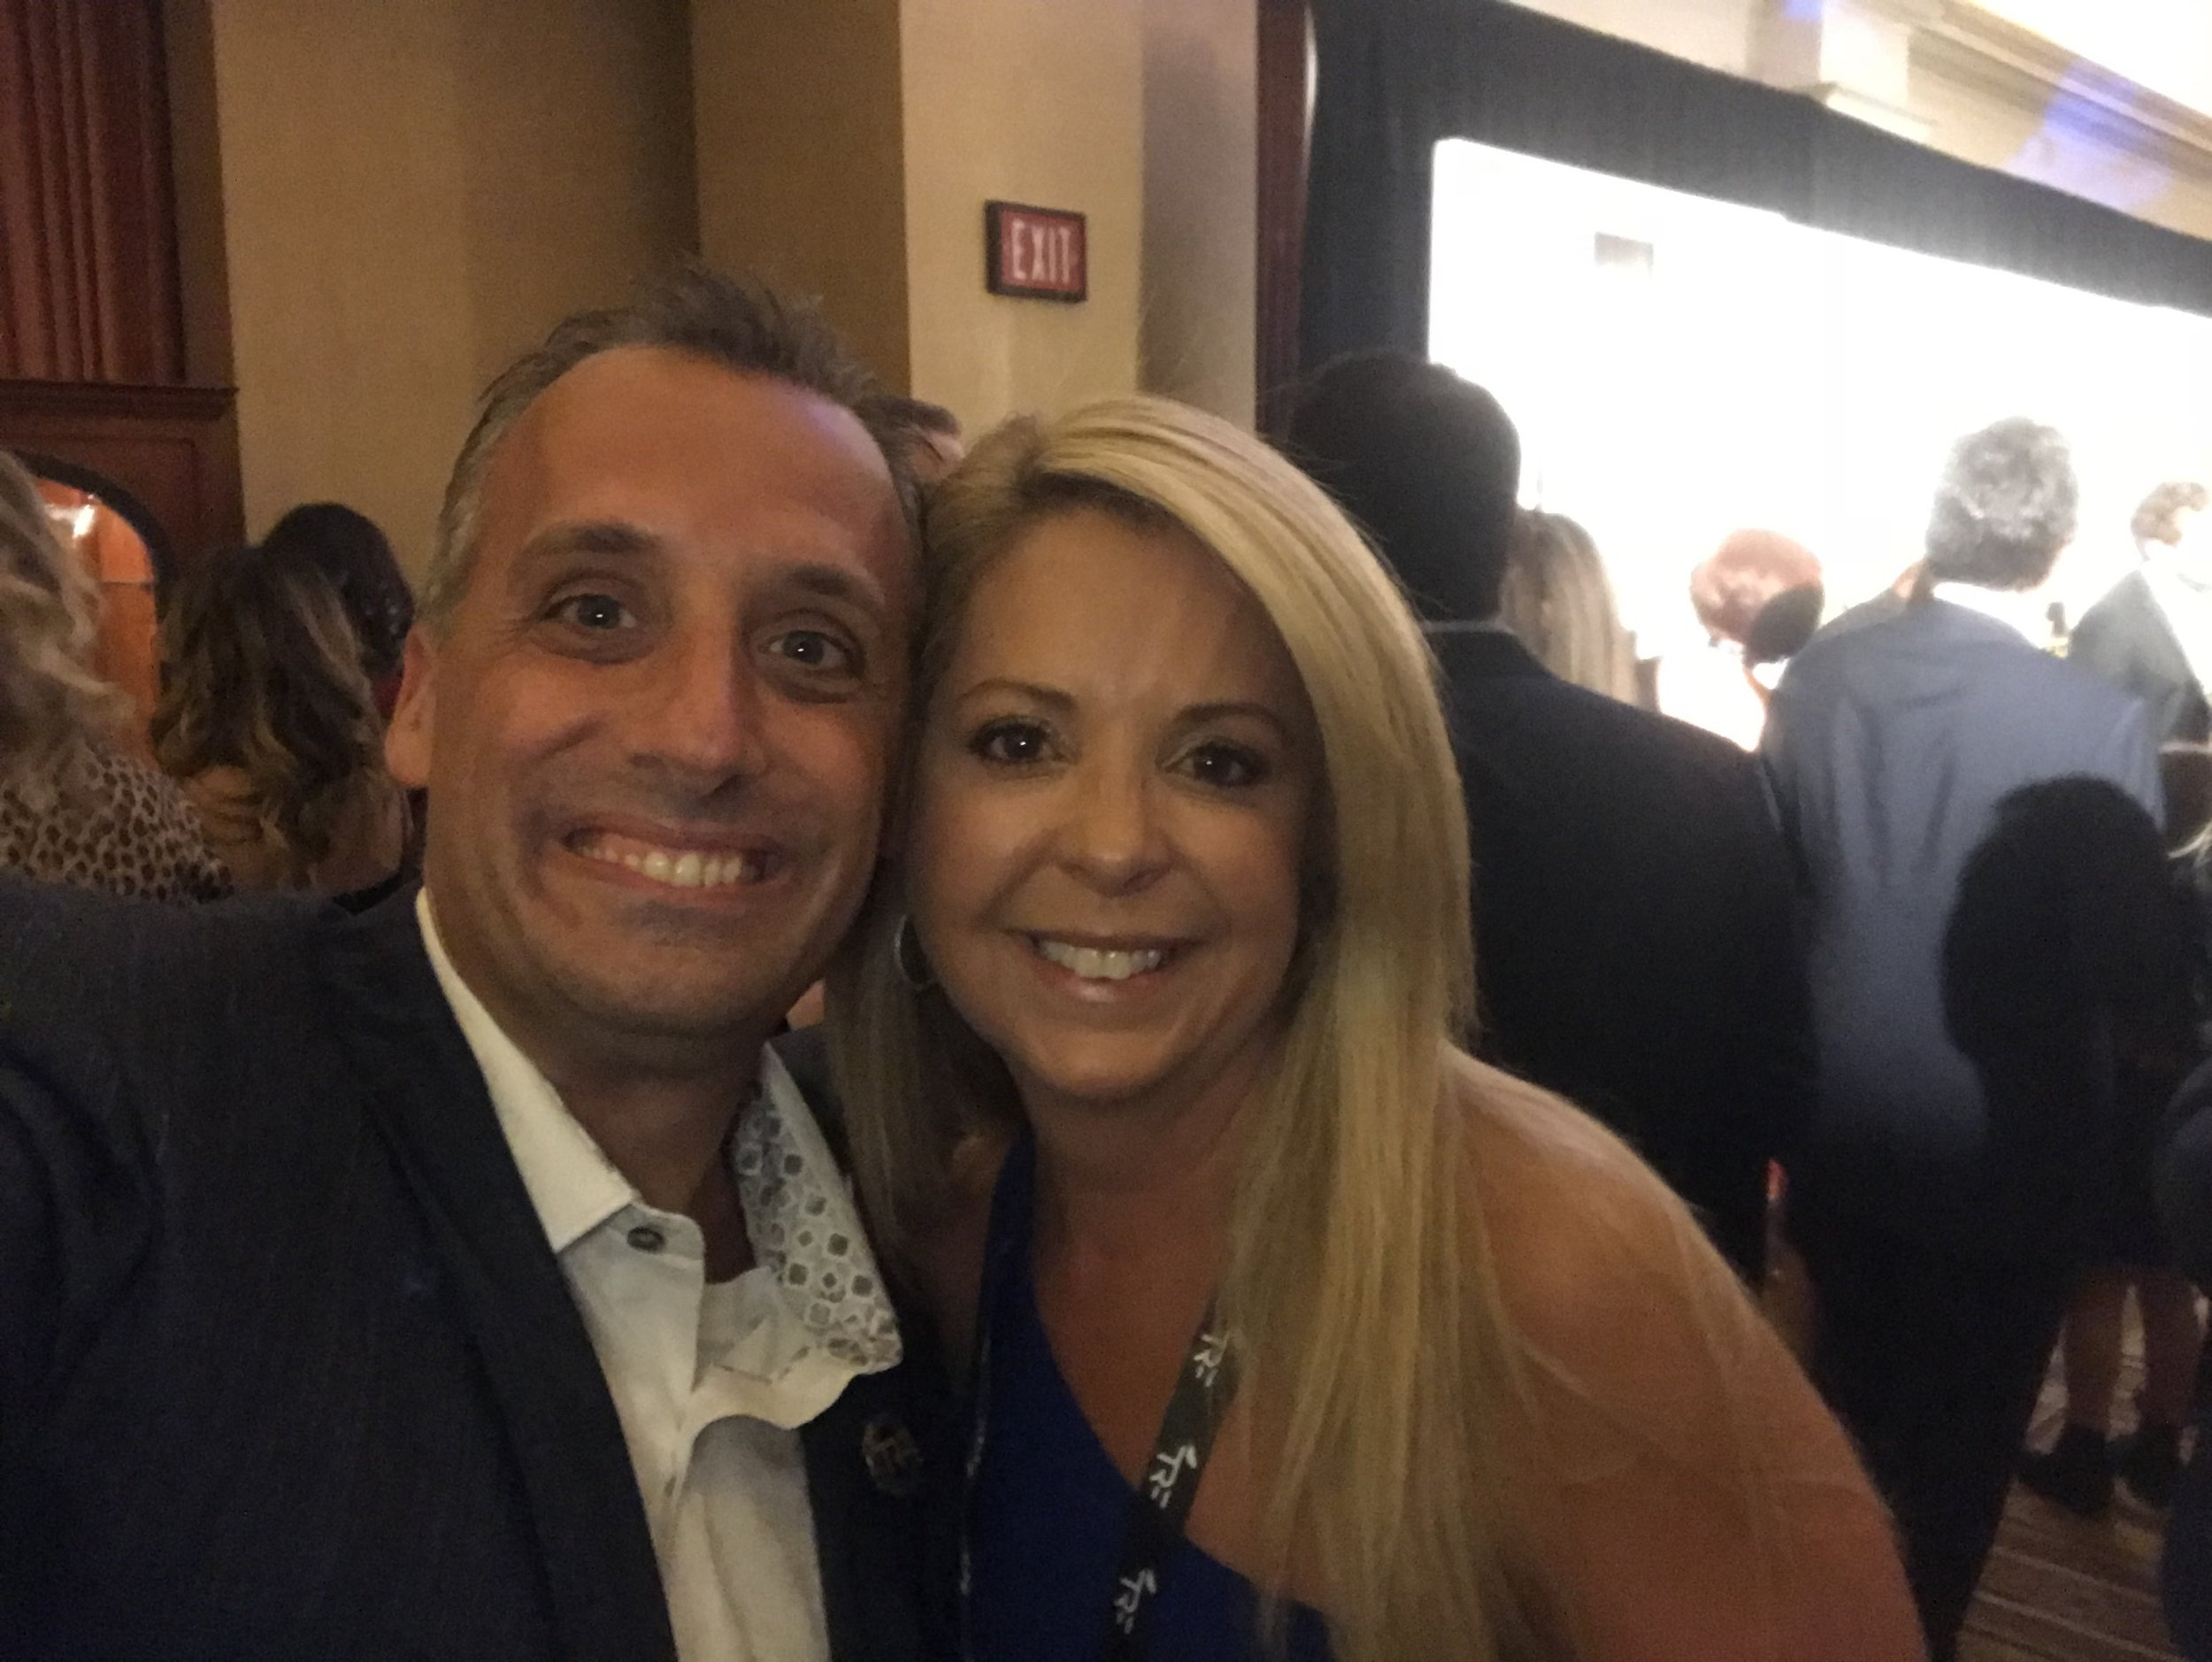 Joseph Gatto of Impractical Jokers